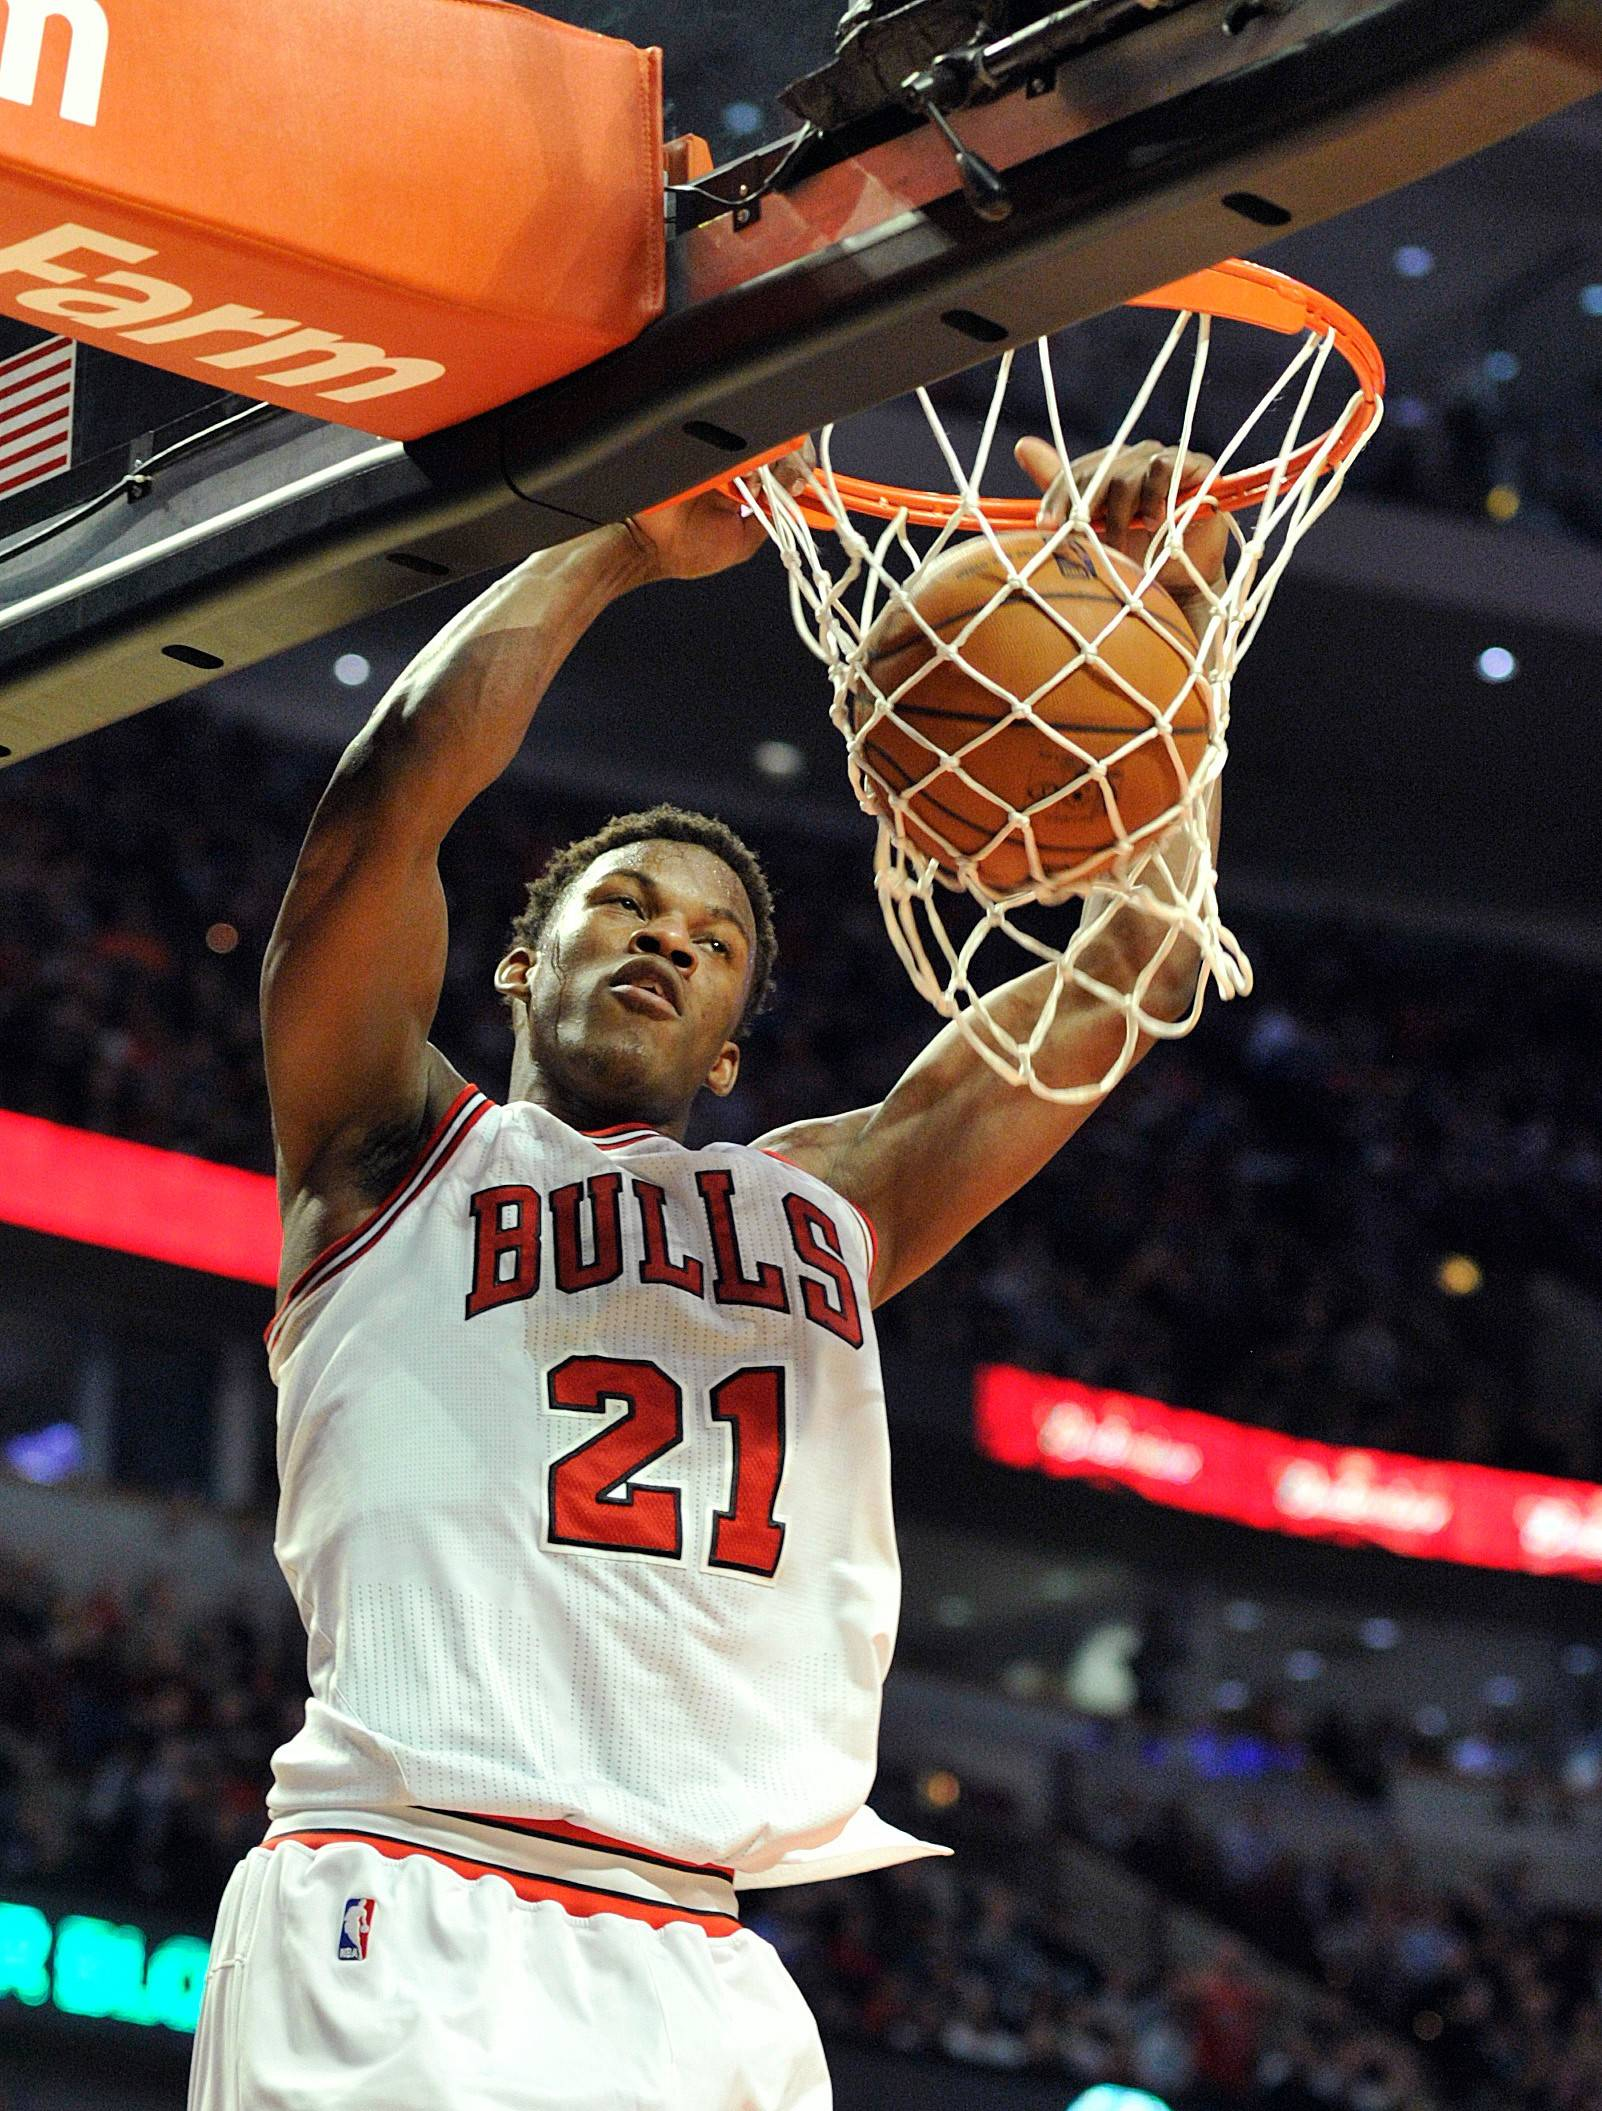 Chicago Bulls' Jimmy Butler (21) dunks the ball against the New York Knicks during the second half of an NBA basketball game, Thursday, April 11, 2013, in Chicago. The Bulls won 118-111 in overtime.